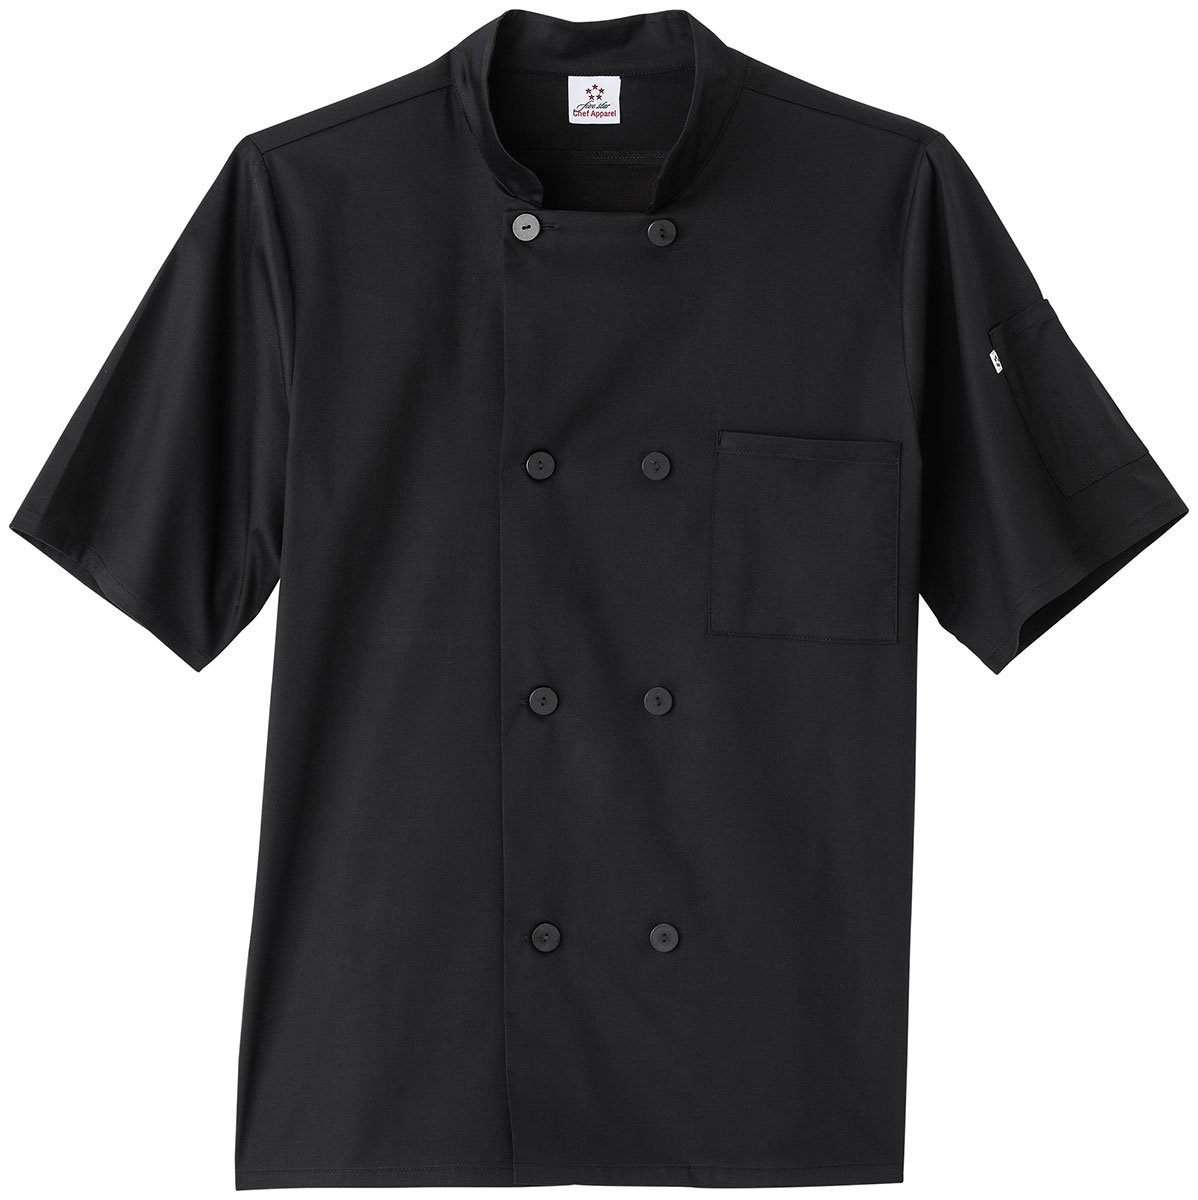 Five Star Chef Apparel Unisex Short Sleeve Stretch Executive Coat Encompass 18516